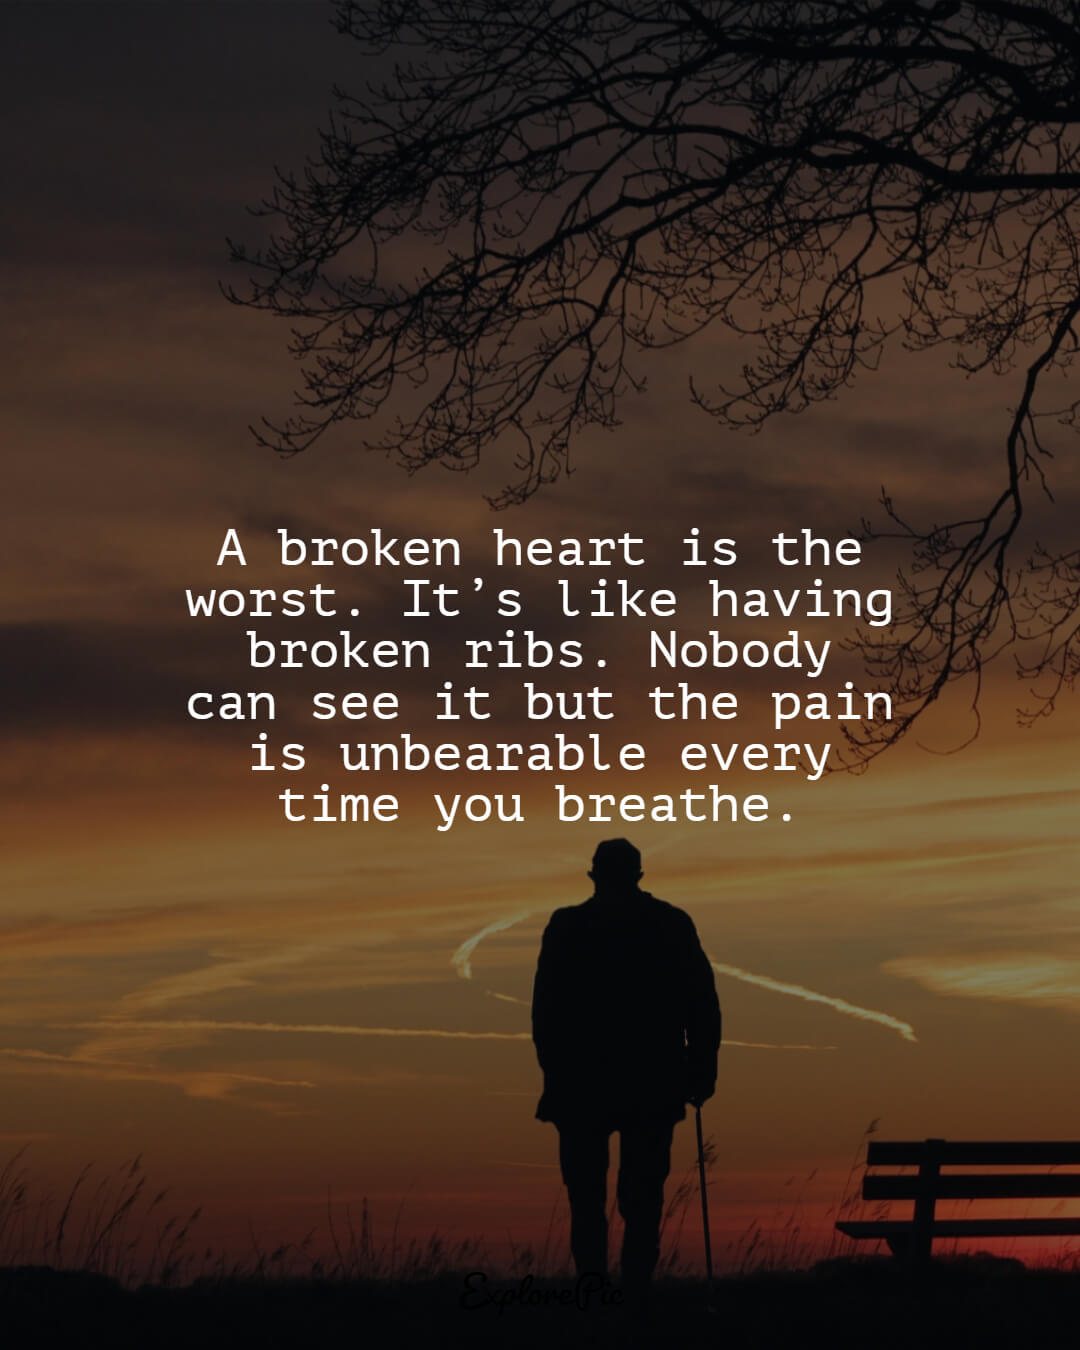 15 Broken Heart Quotes And Heartbroken Sayings 4